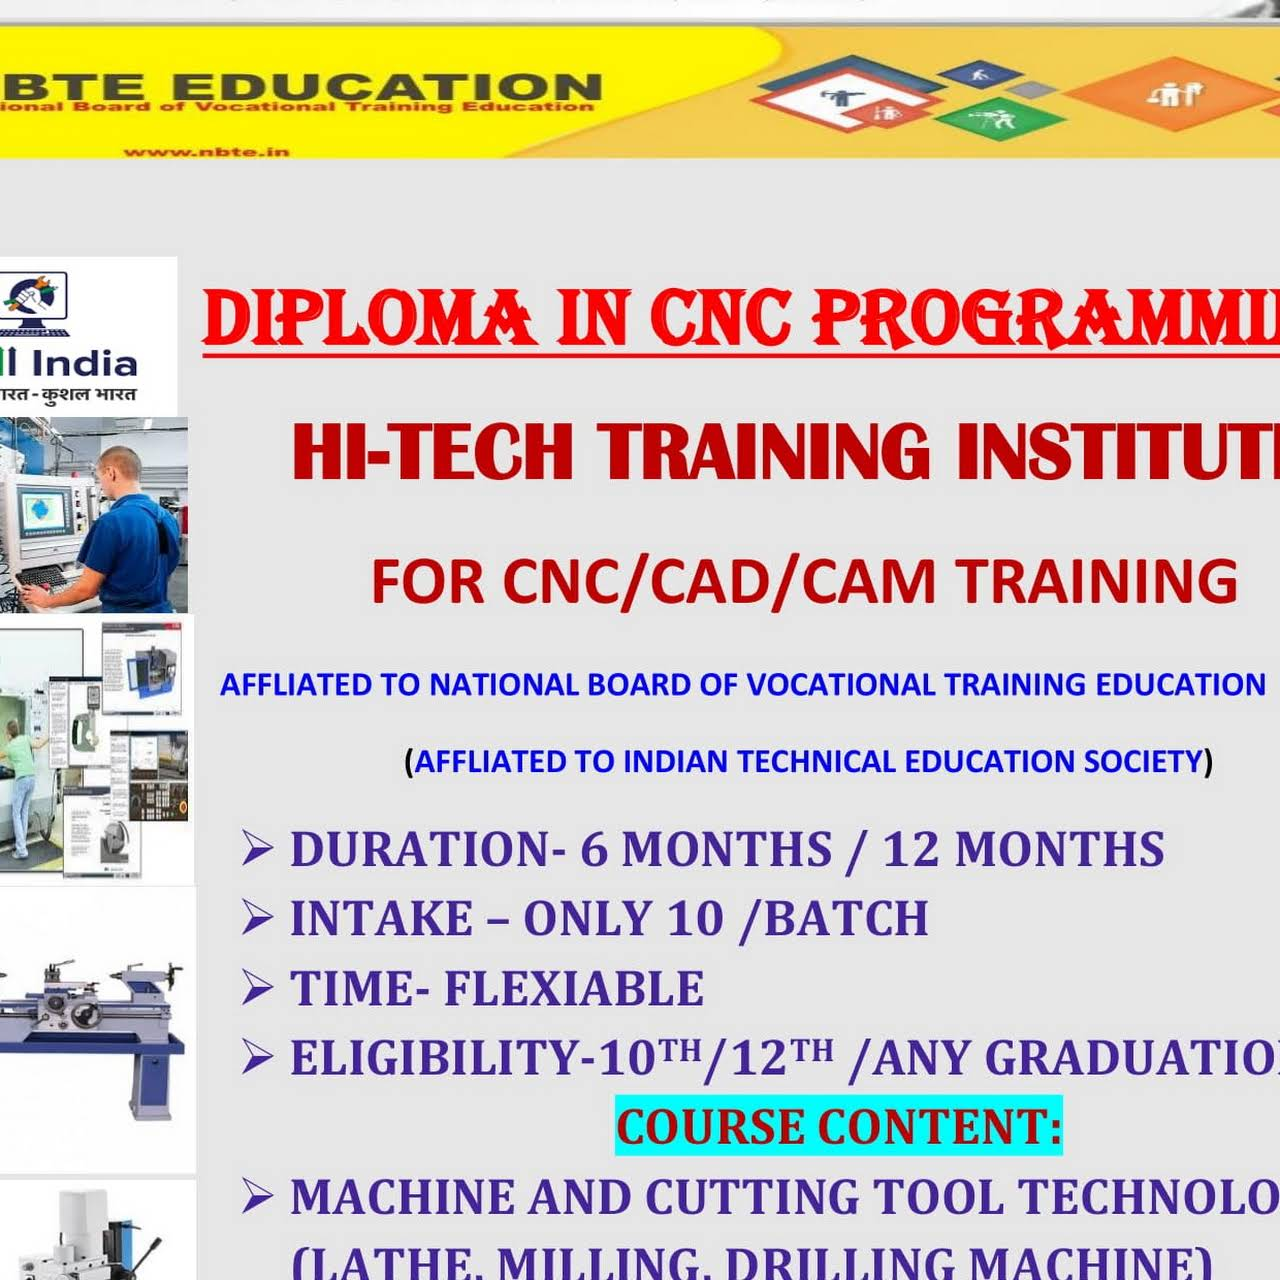 Hi-Tech Training Institute - CNC /CAD/CAM/AUTOMATION